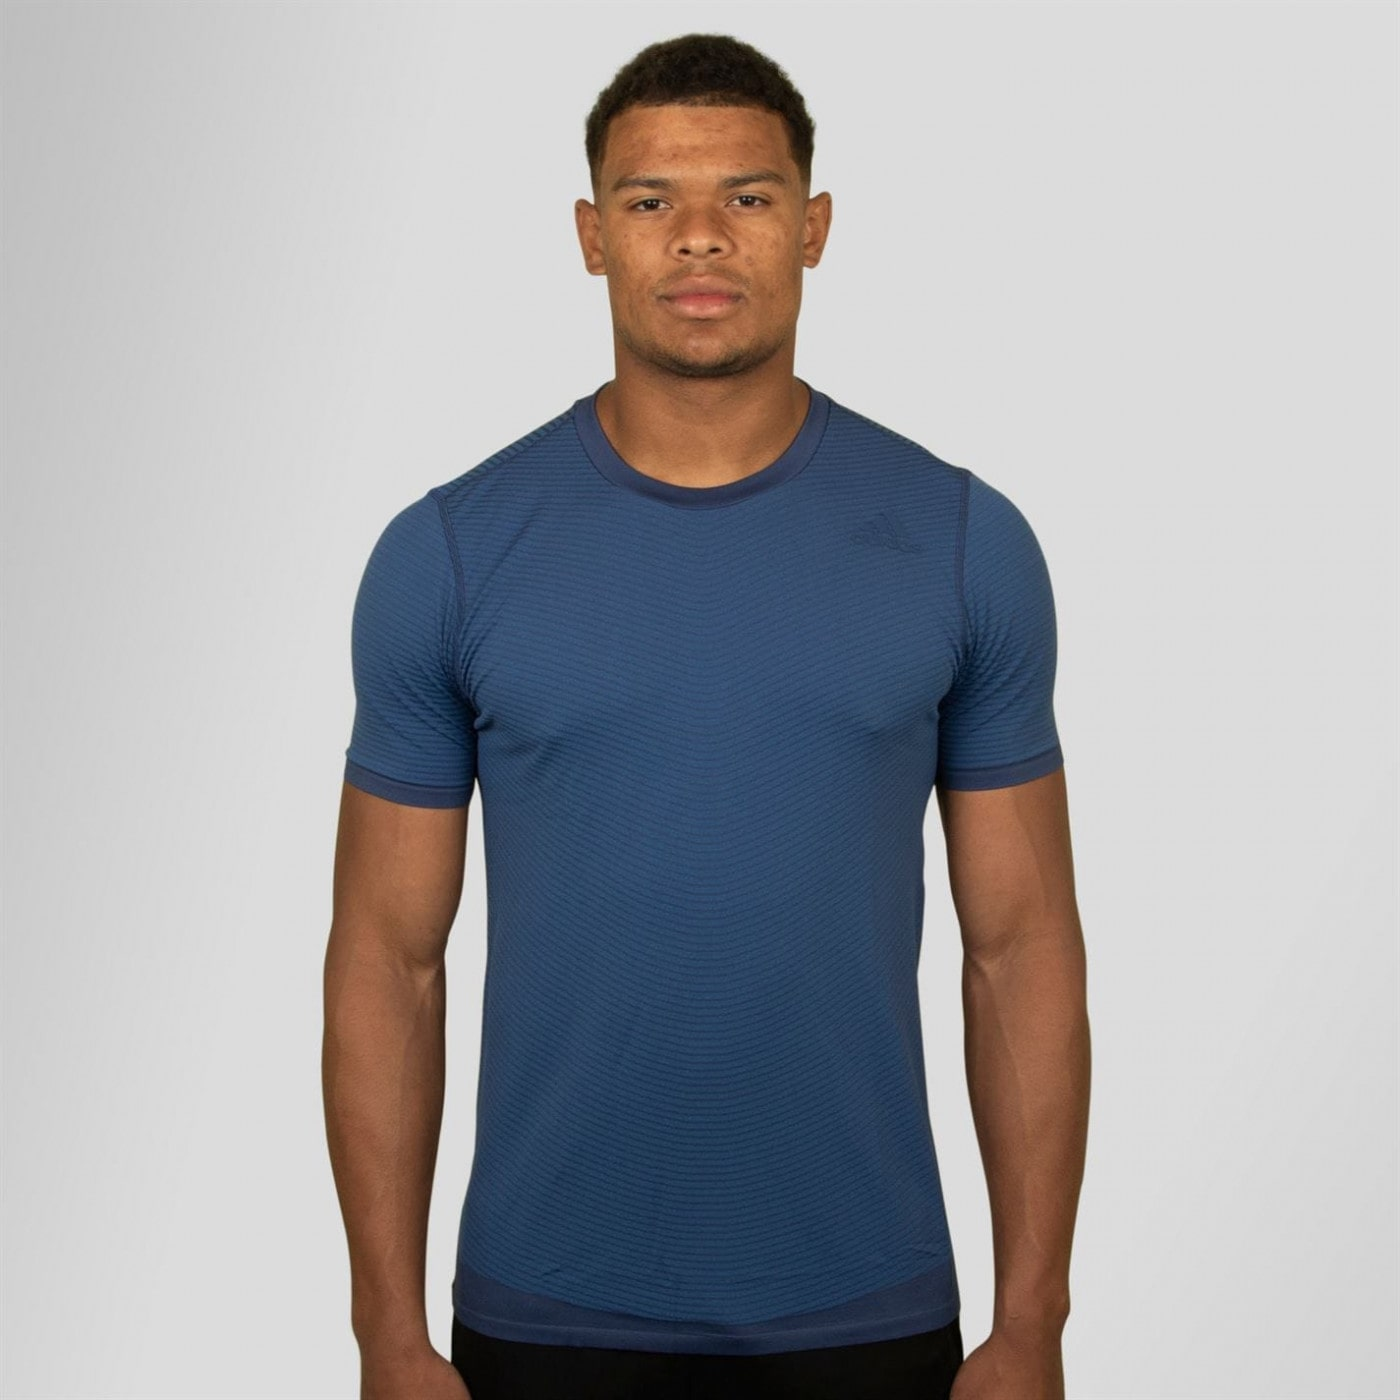 Adidas Freelift Training Top Mens